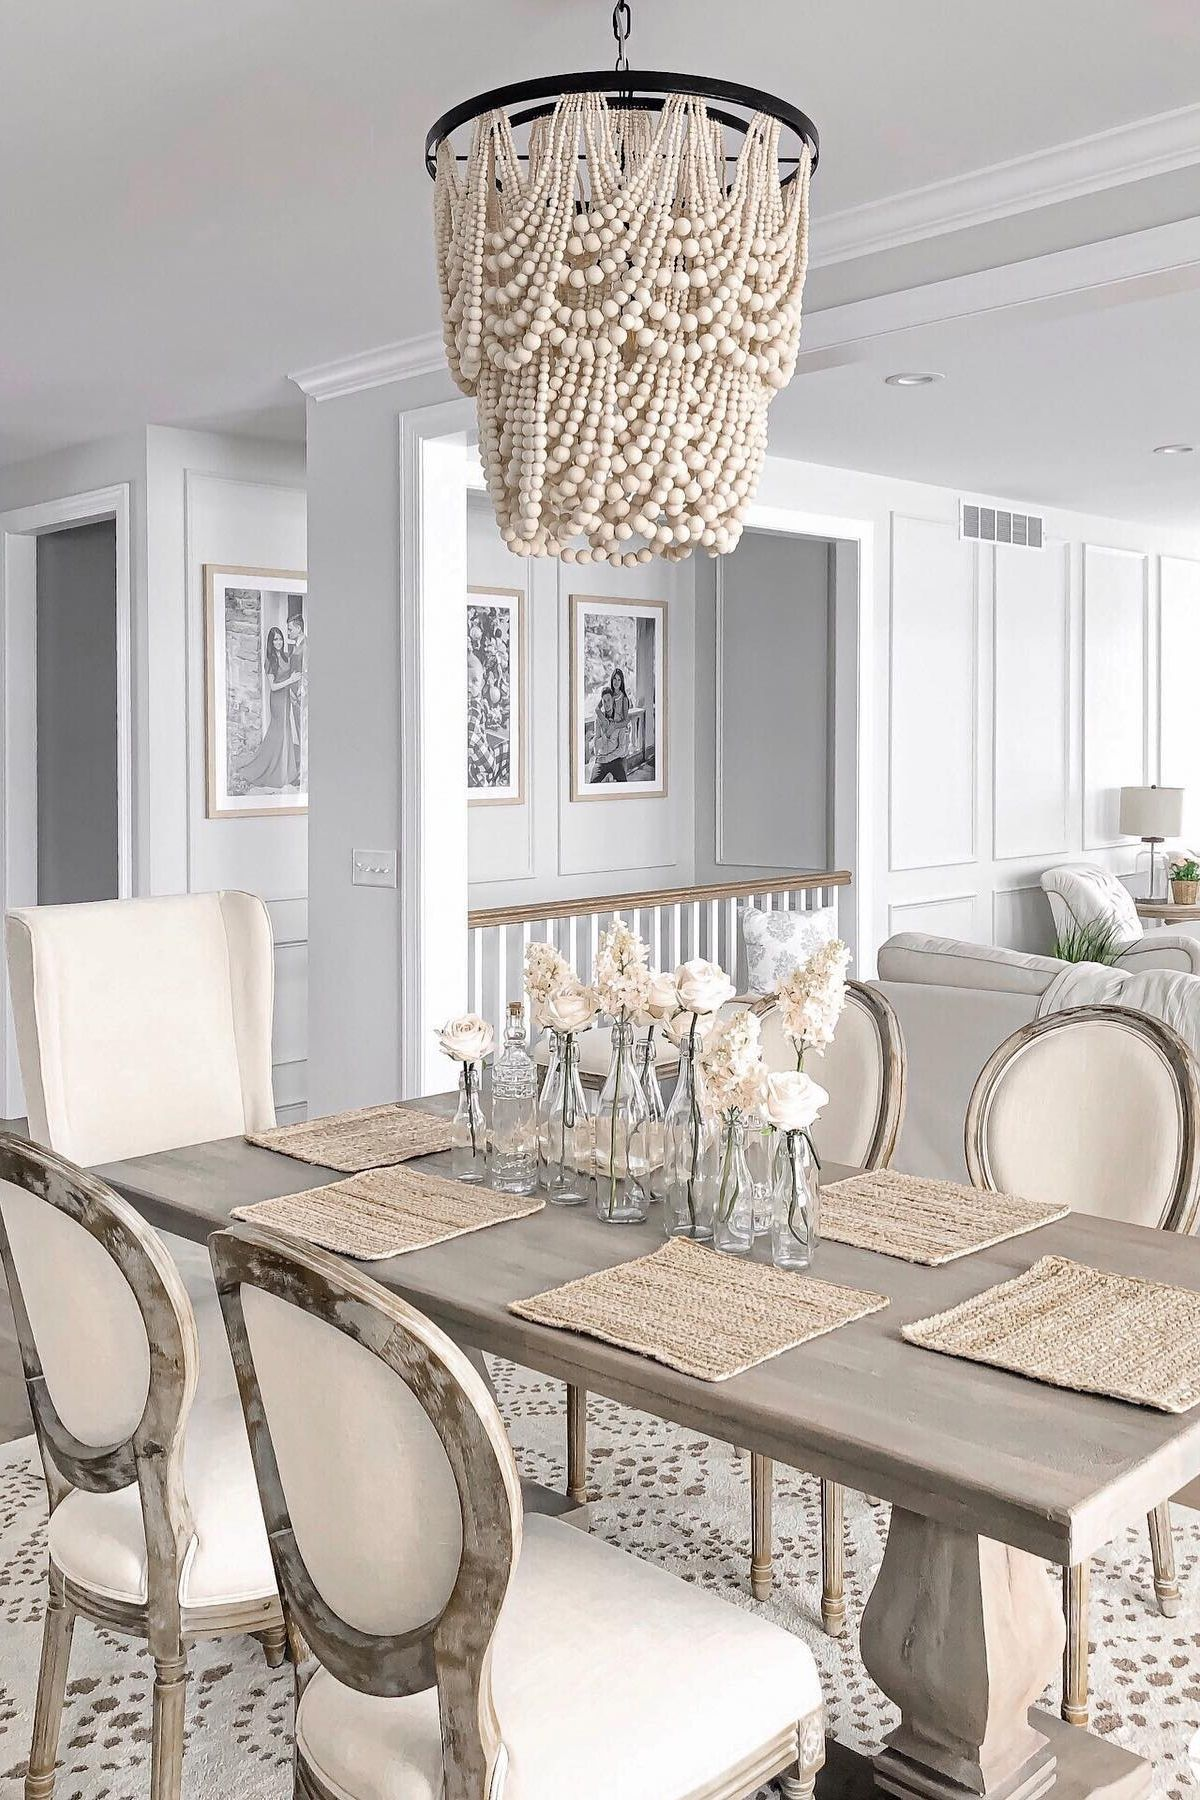 Modern Rustic Farmhouse Dining Room With Silk Flower Accents In 2020 Farmhouse Dining Room Farmhouse Dining Dining Room Table Decor